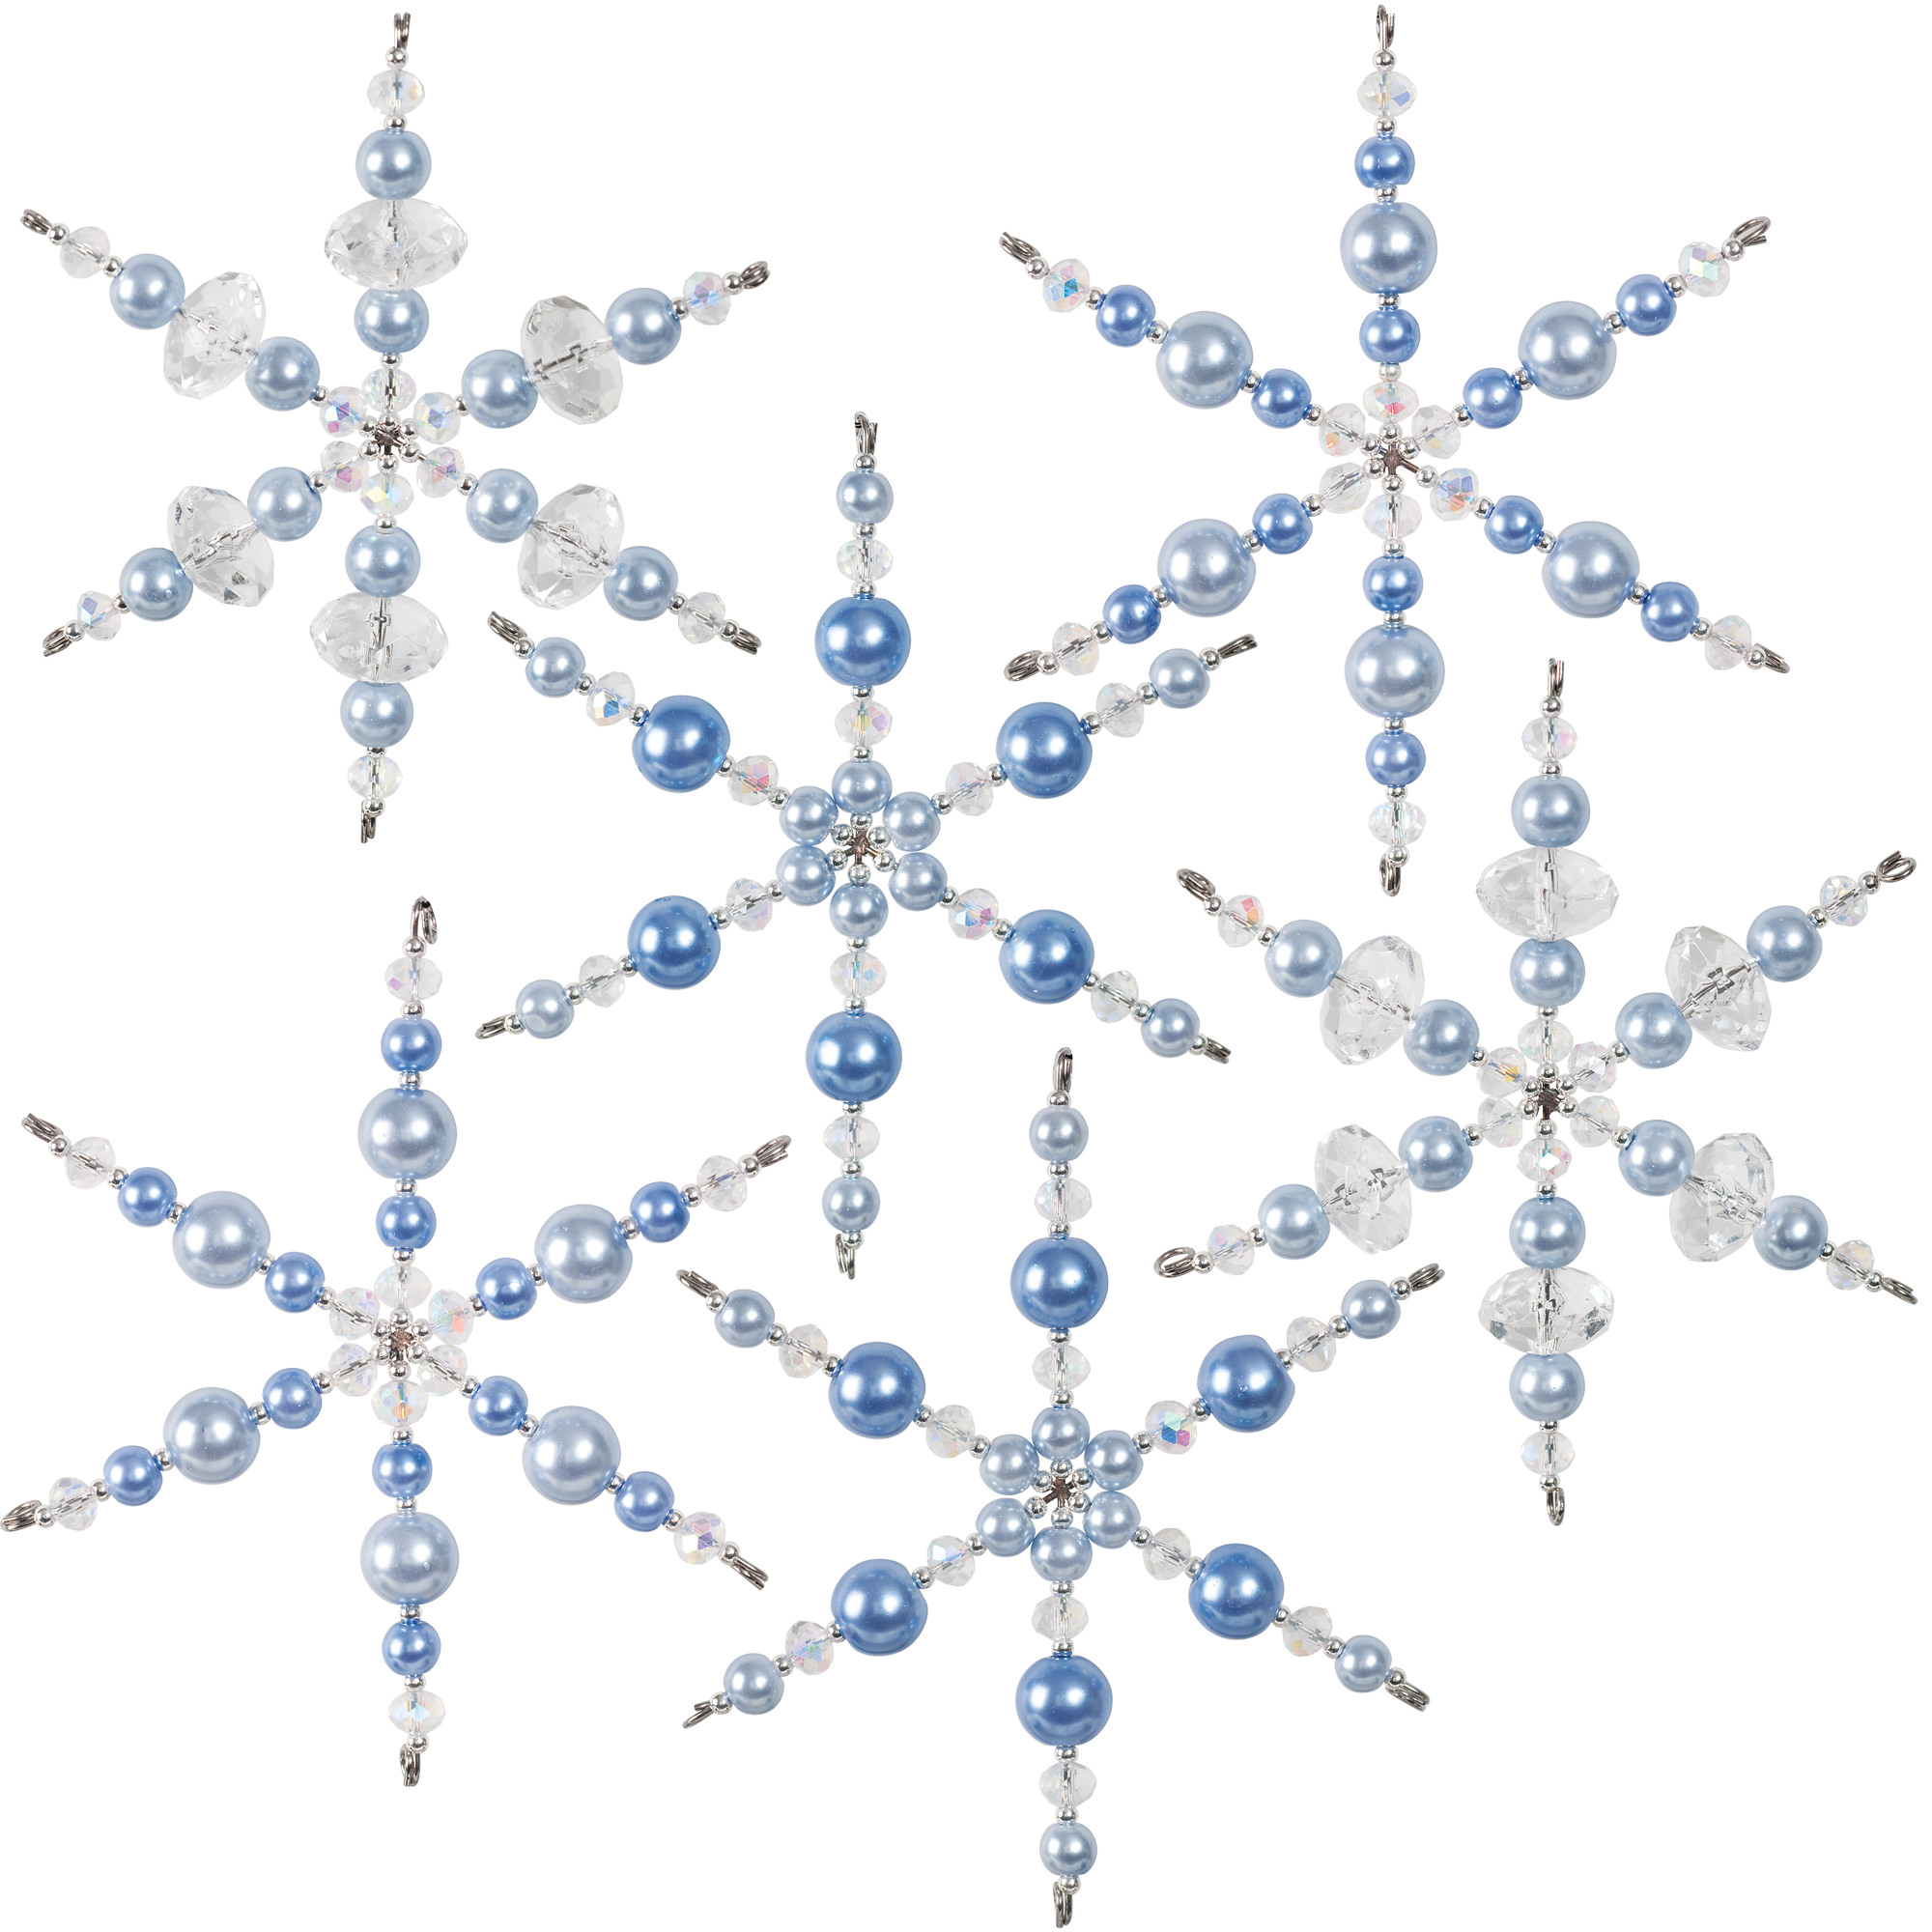 Nostalgic Christmas™ Beaded Crystal Ornaments Kit - Blue and Crystal Snowflakes